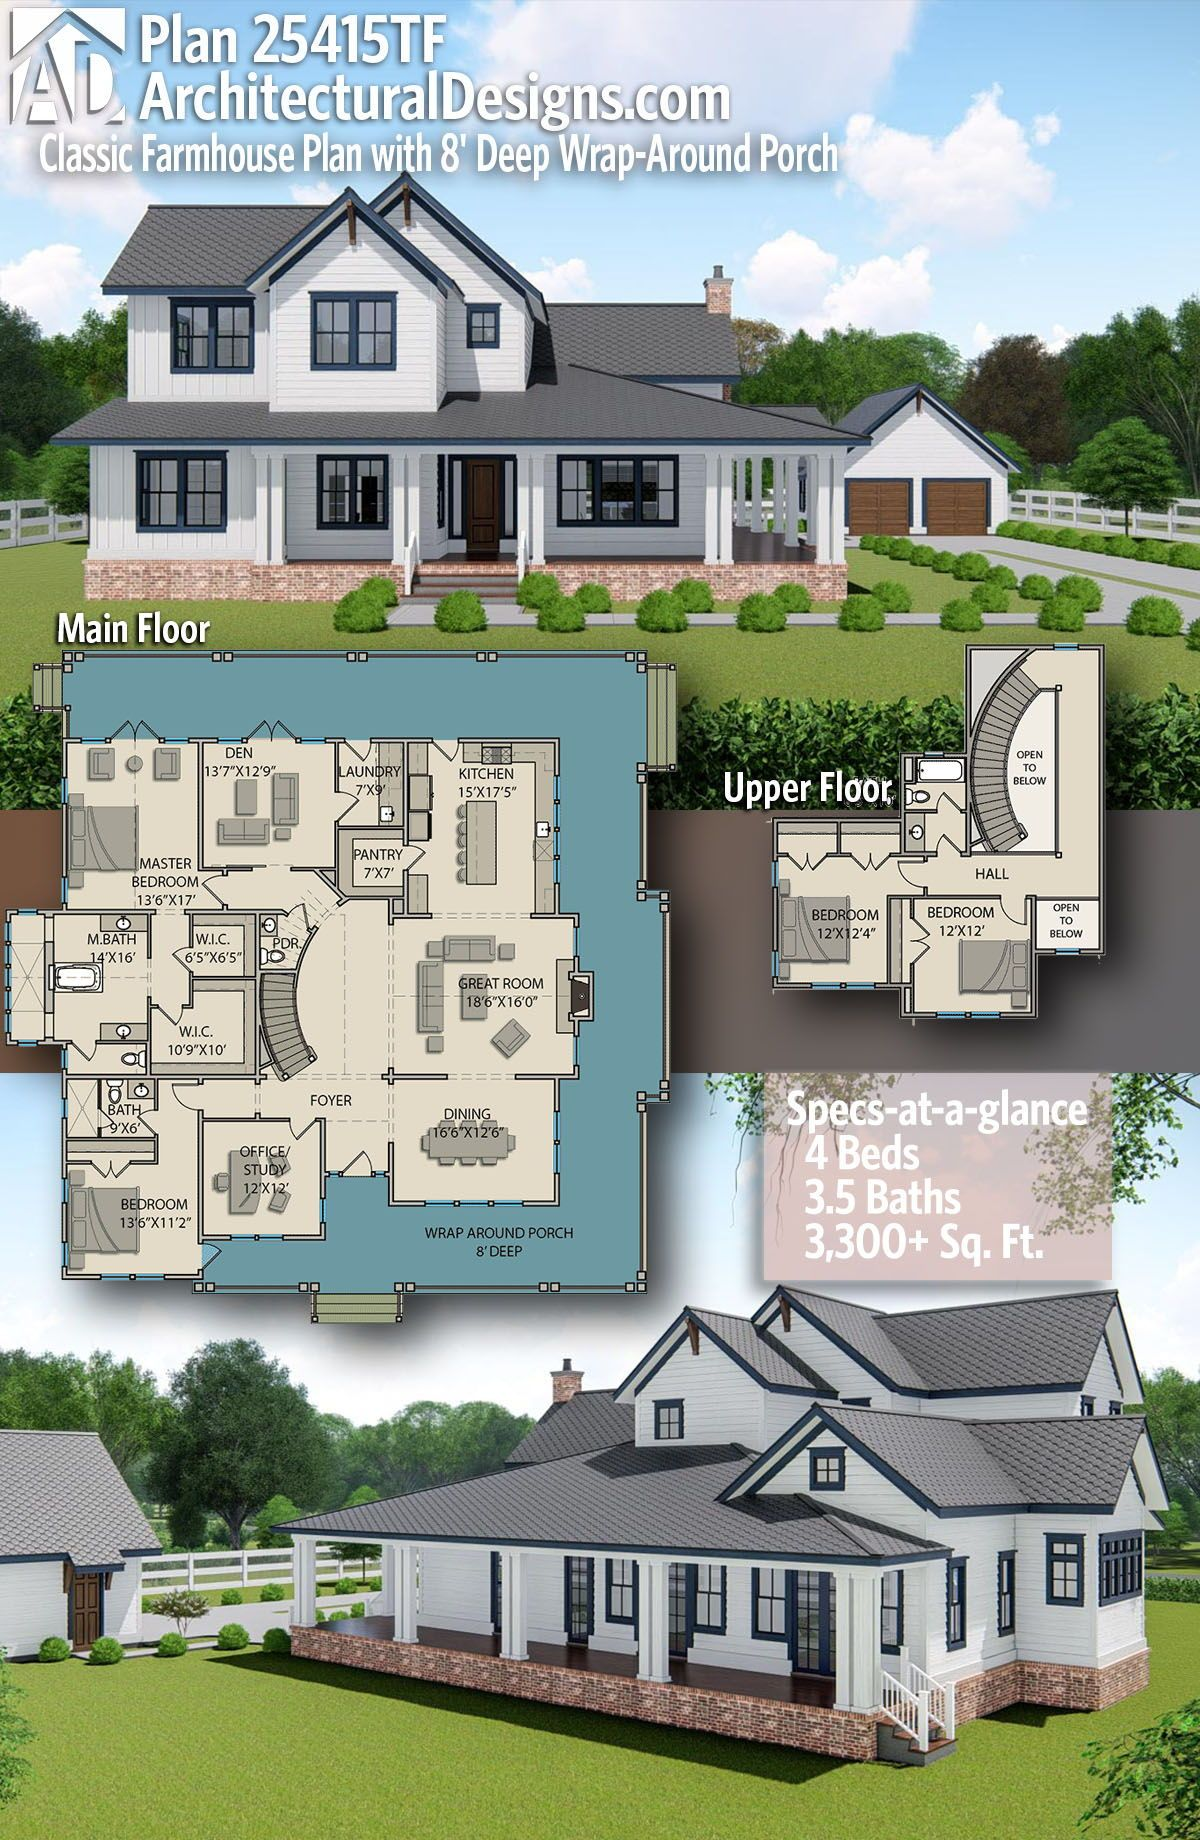 Plan 25415TF: Classic Farmhouse Plan with 8 #futurehouse